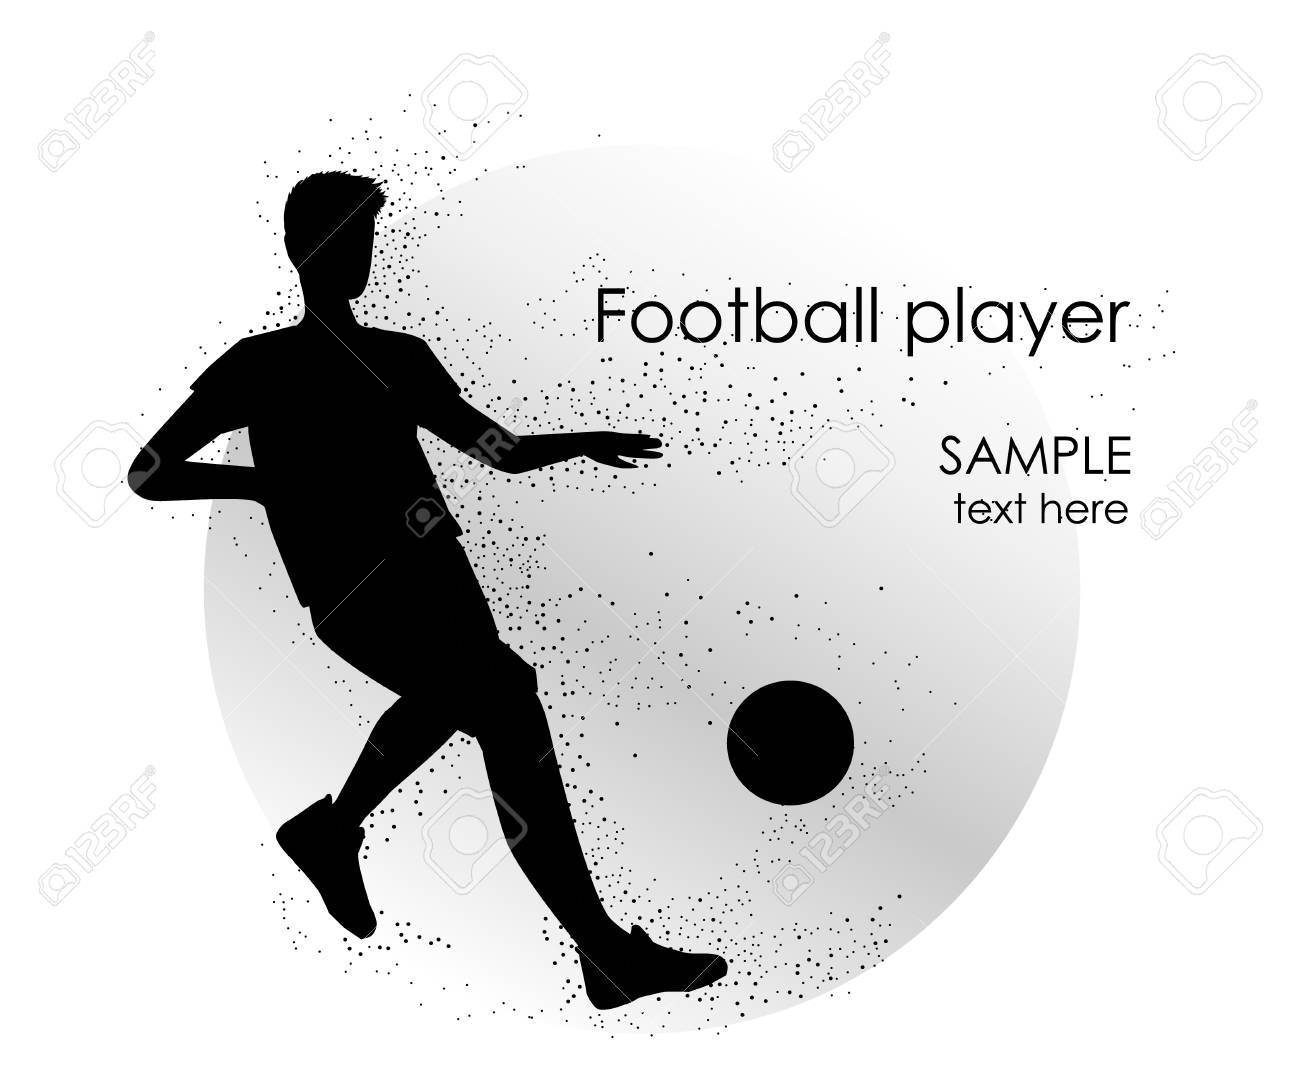 Football player silhouette - vector illustration. Man Soccer player Kick on ball. Person isolated on white background. Poster space for your text - 104765221